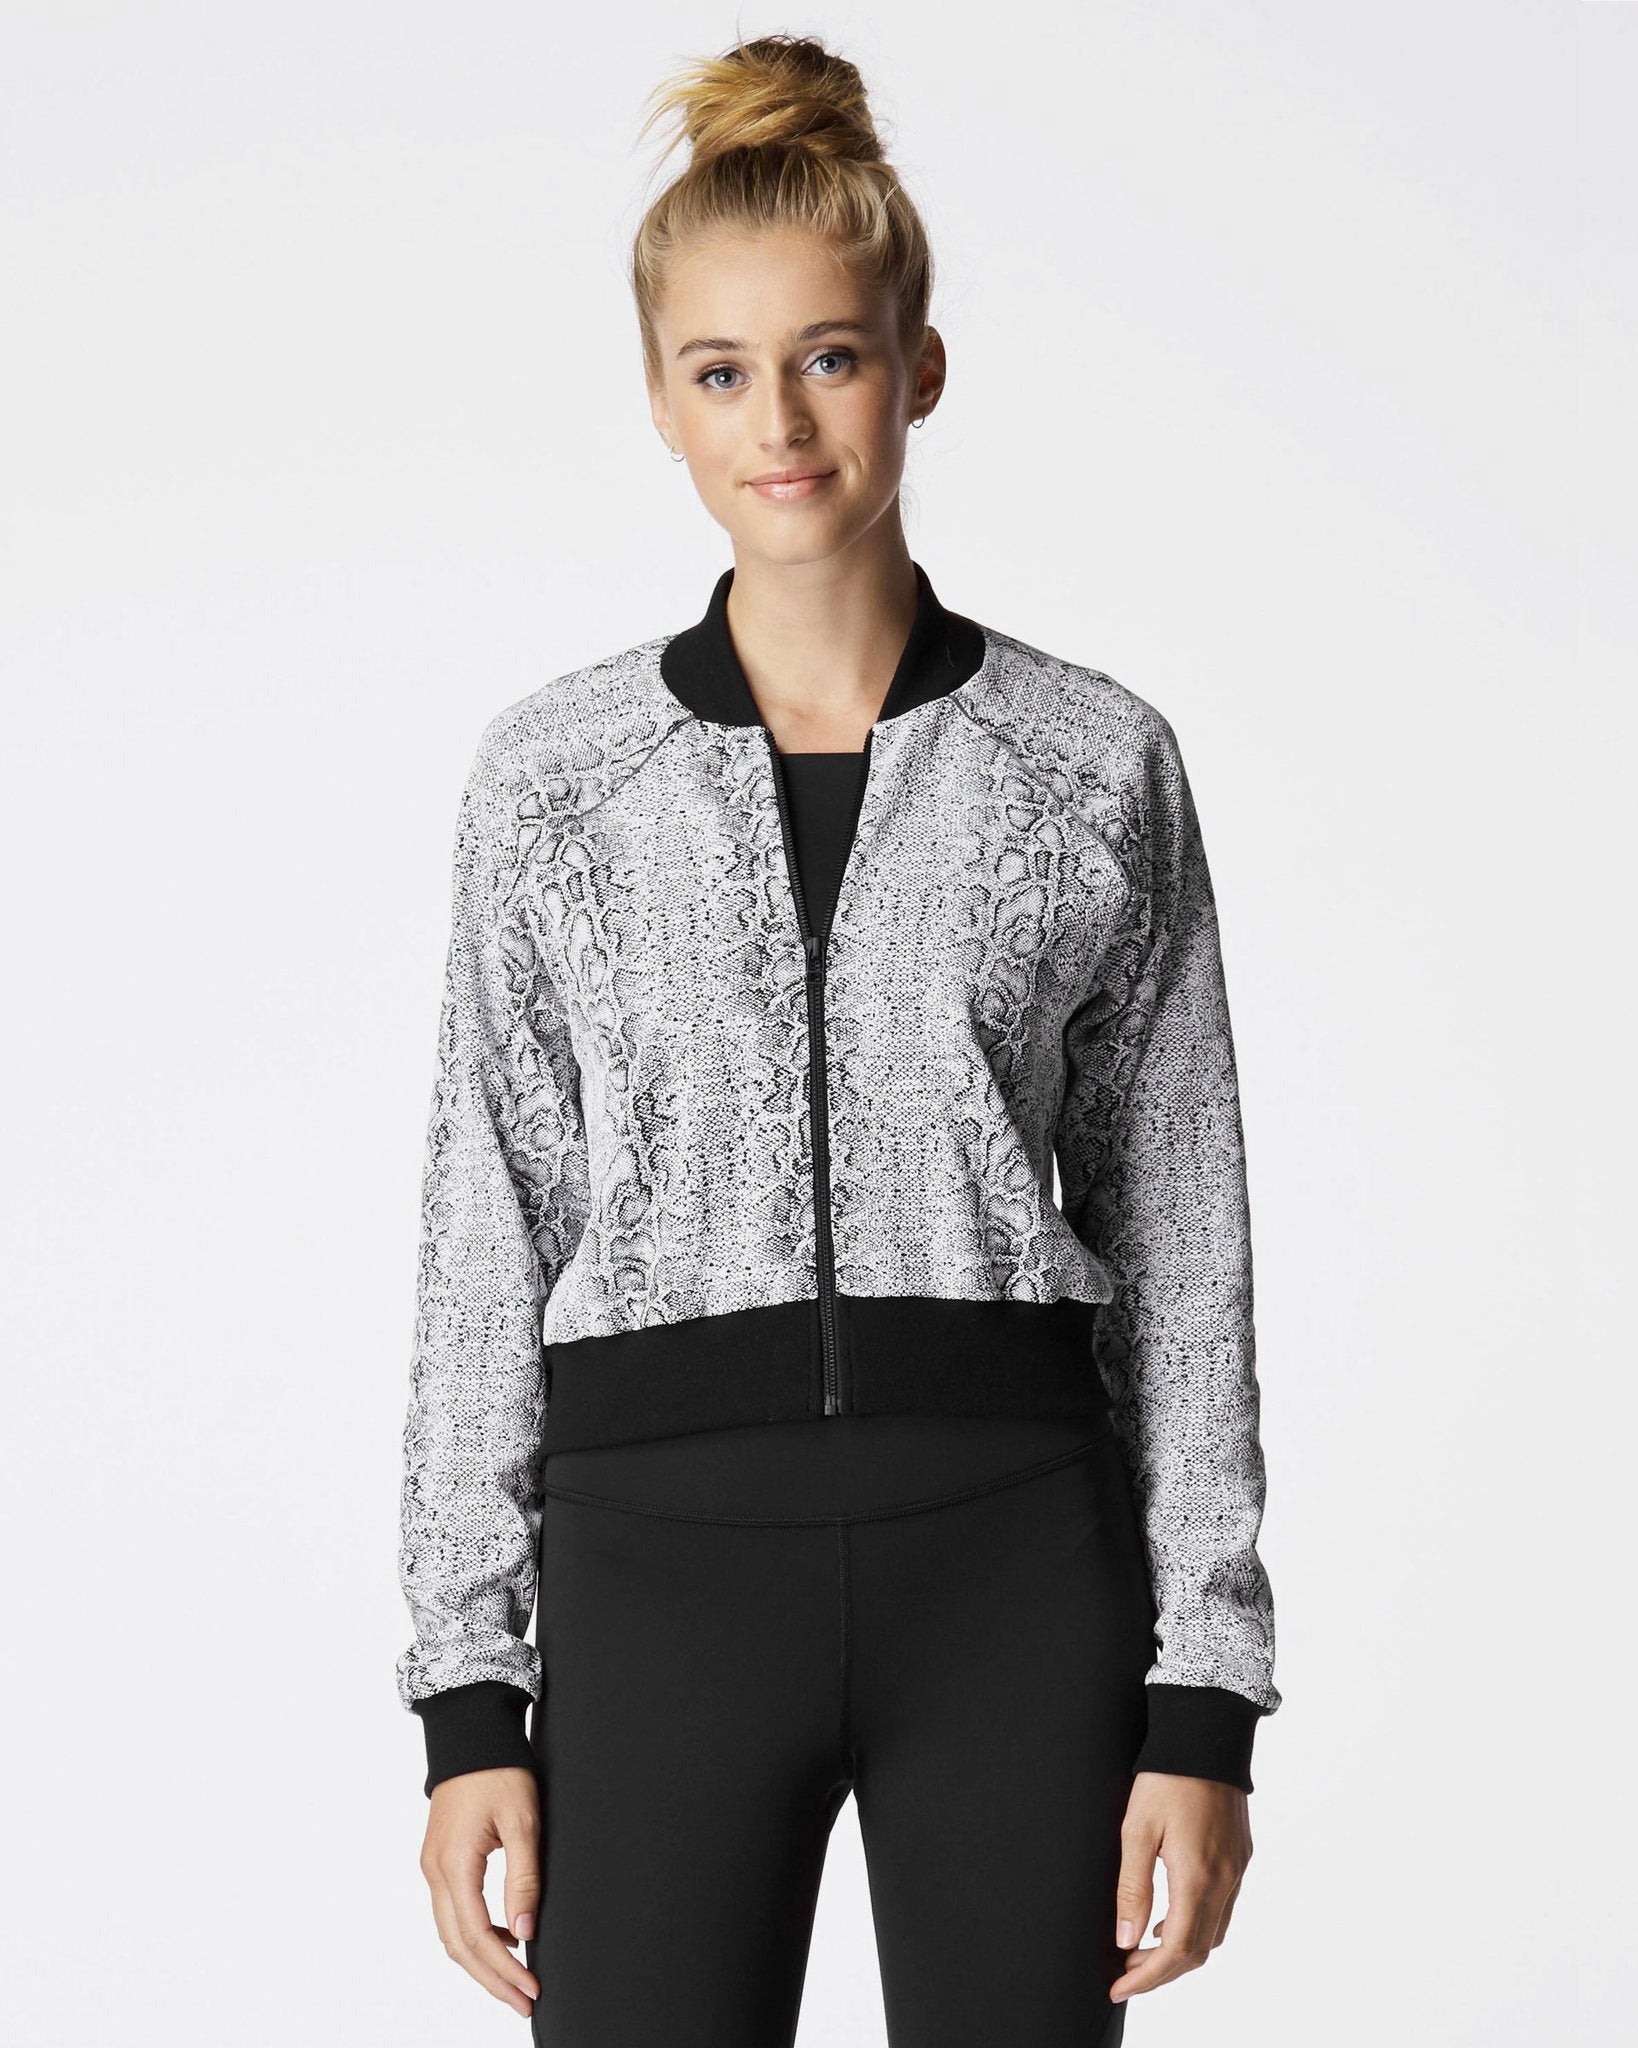 flash-jacket-black-white-python